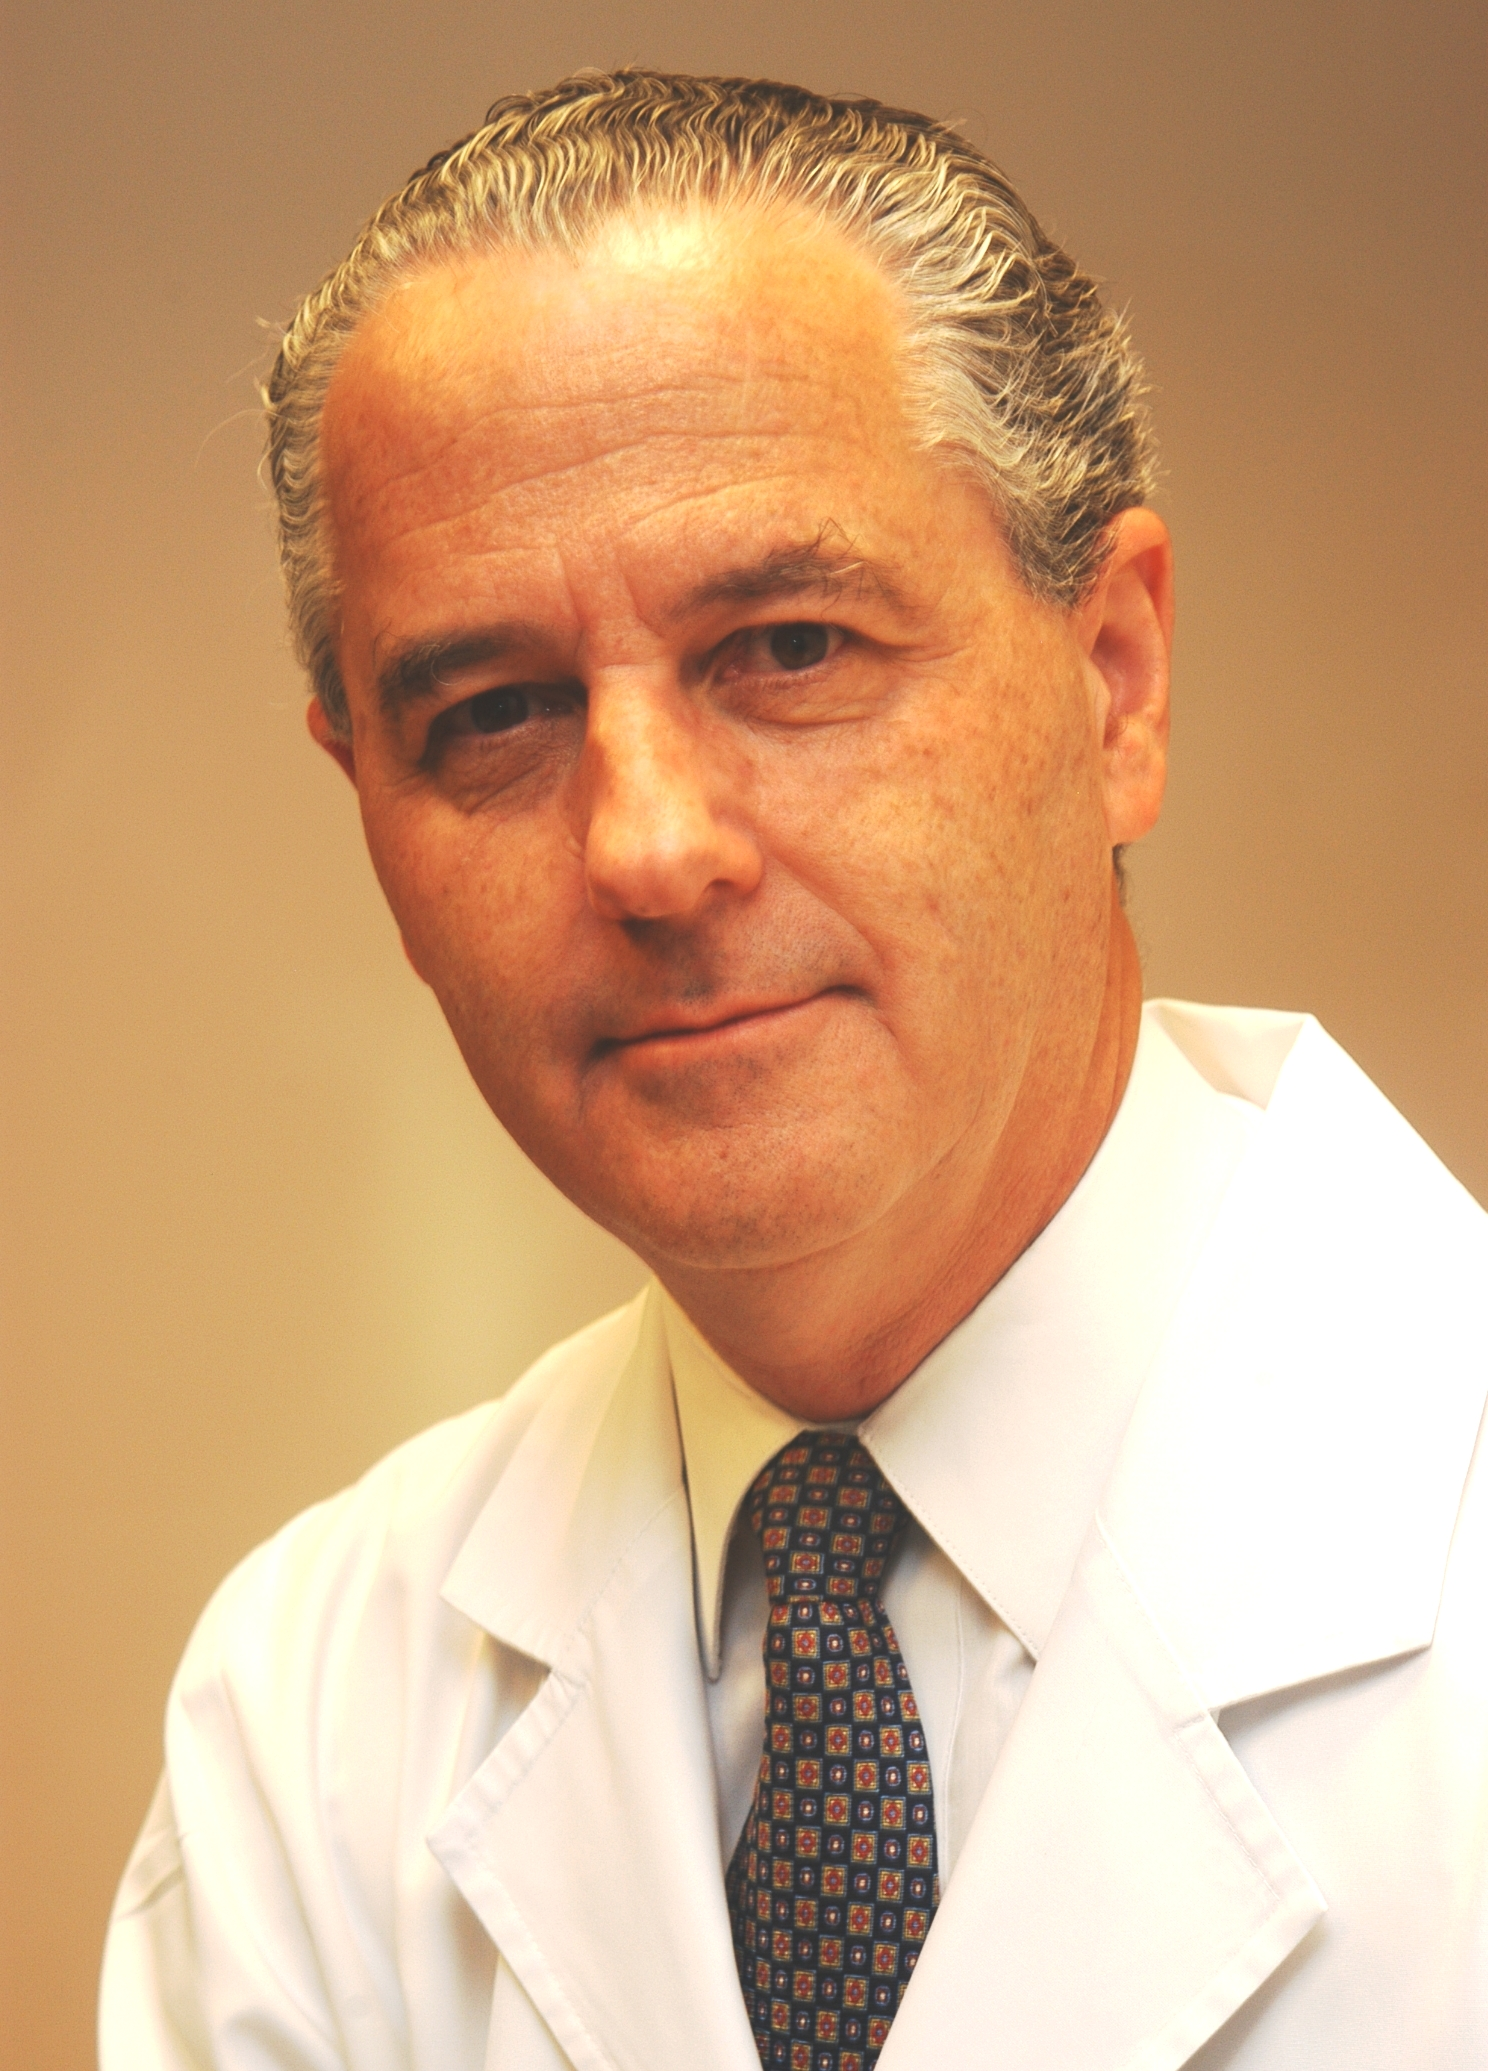 Dr. Juan Hepp es nombrado miembro honorario de la European Surgical Association